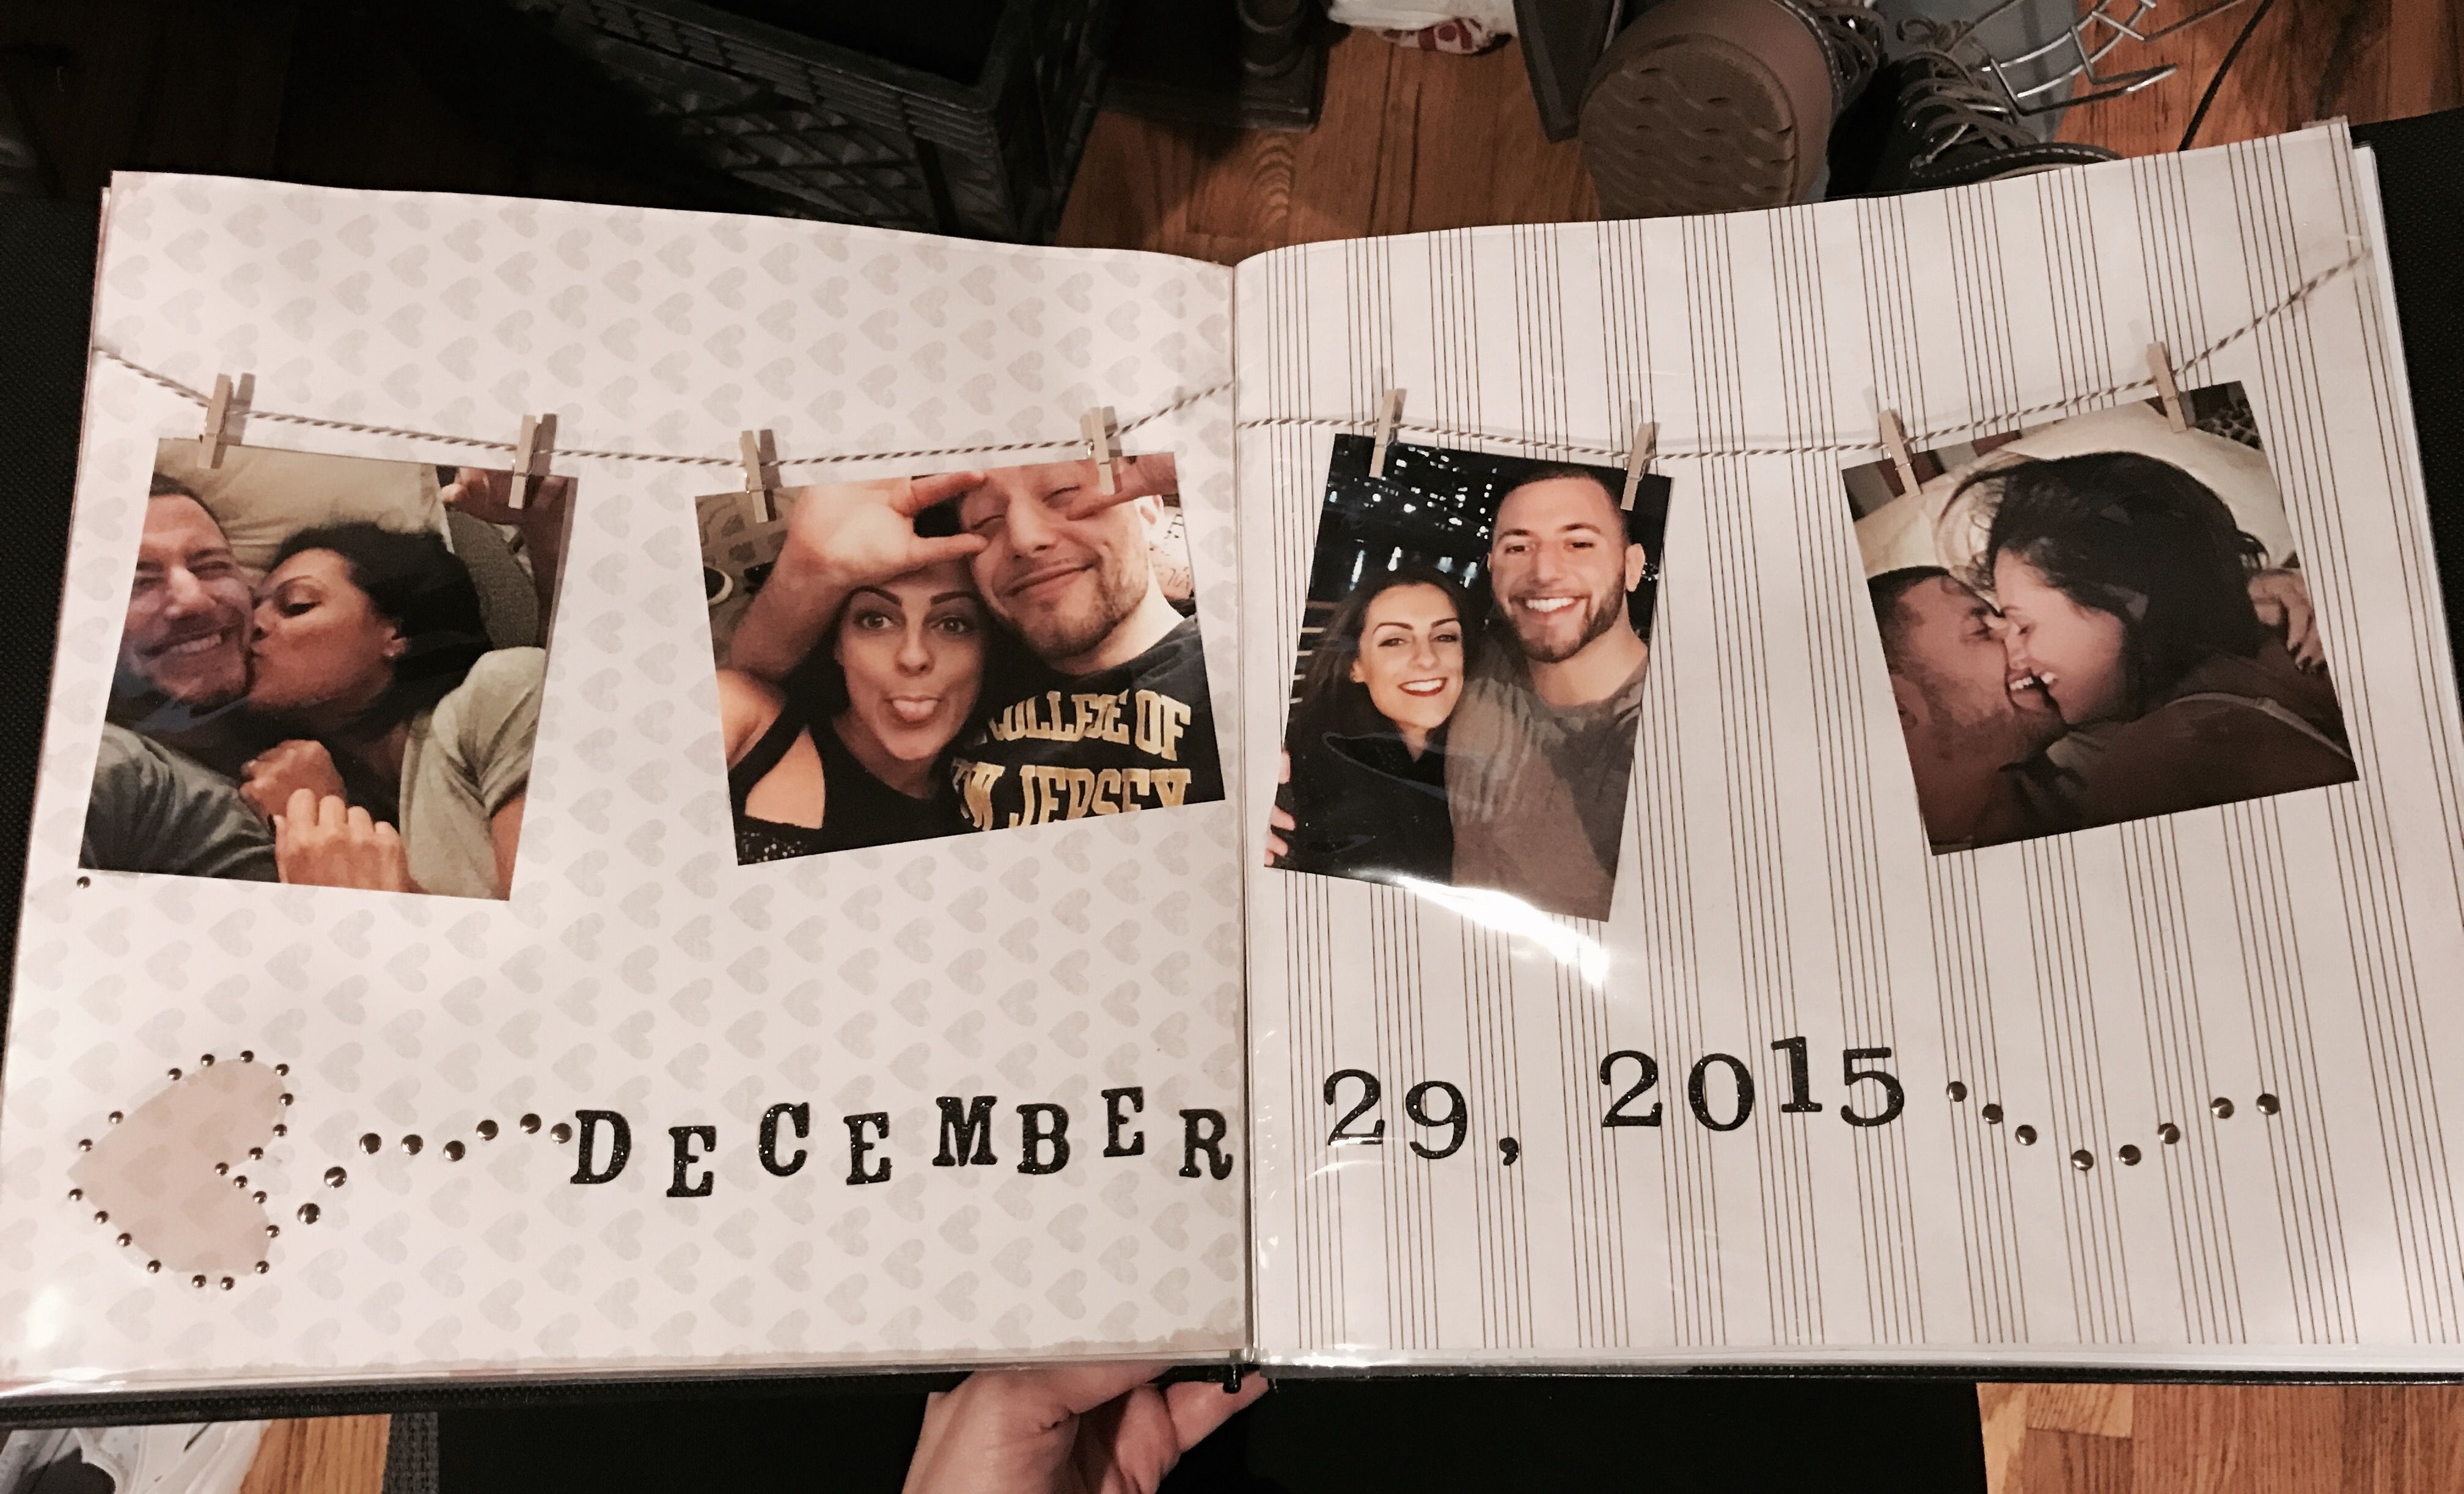 27 Excellent Photo of Scrapbook Diy Boyfriend - maintech.info #scrapbook